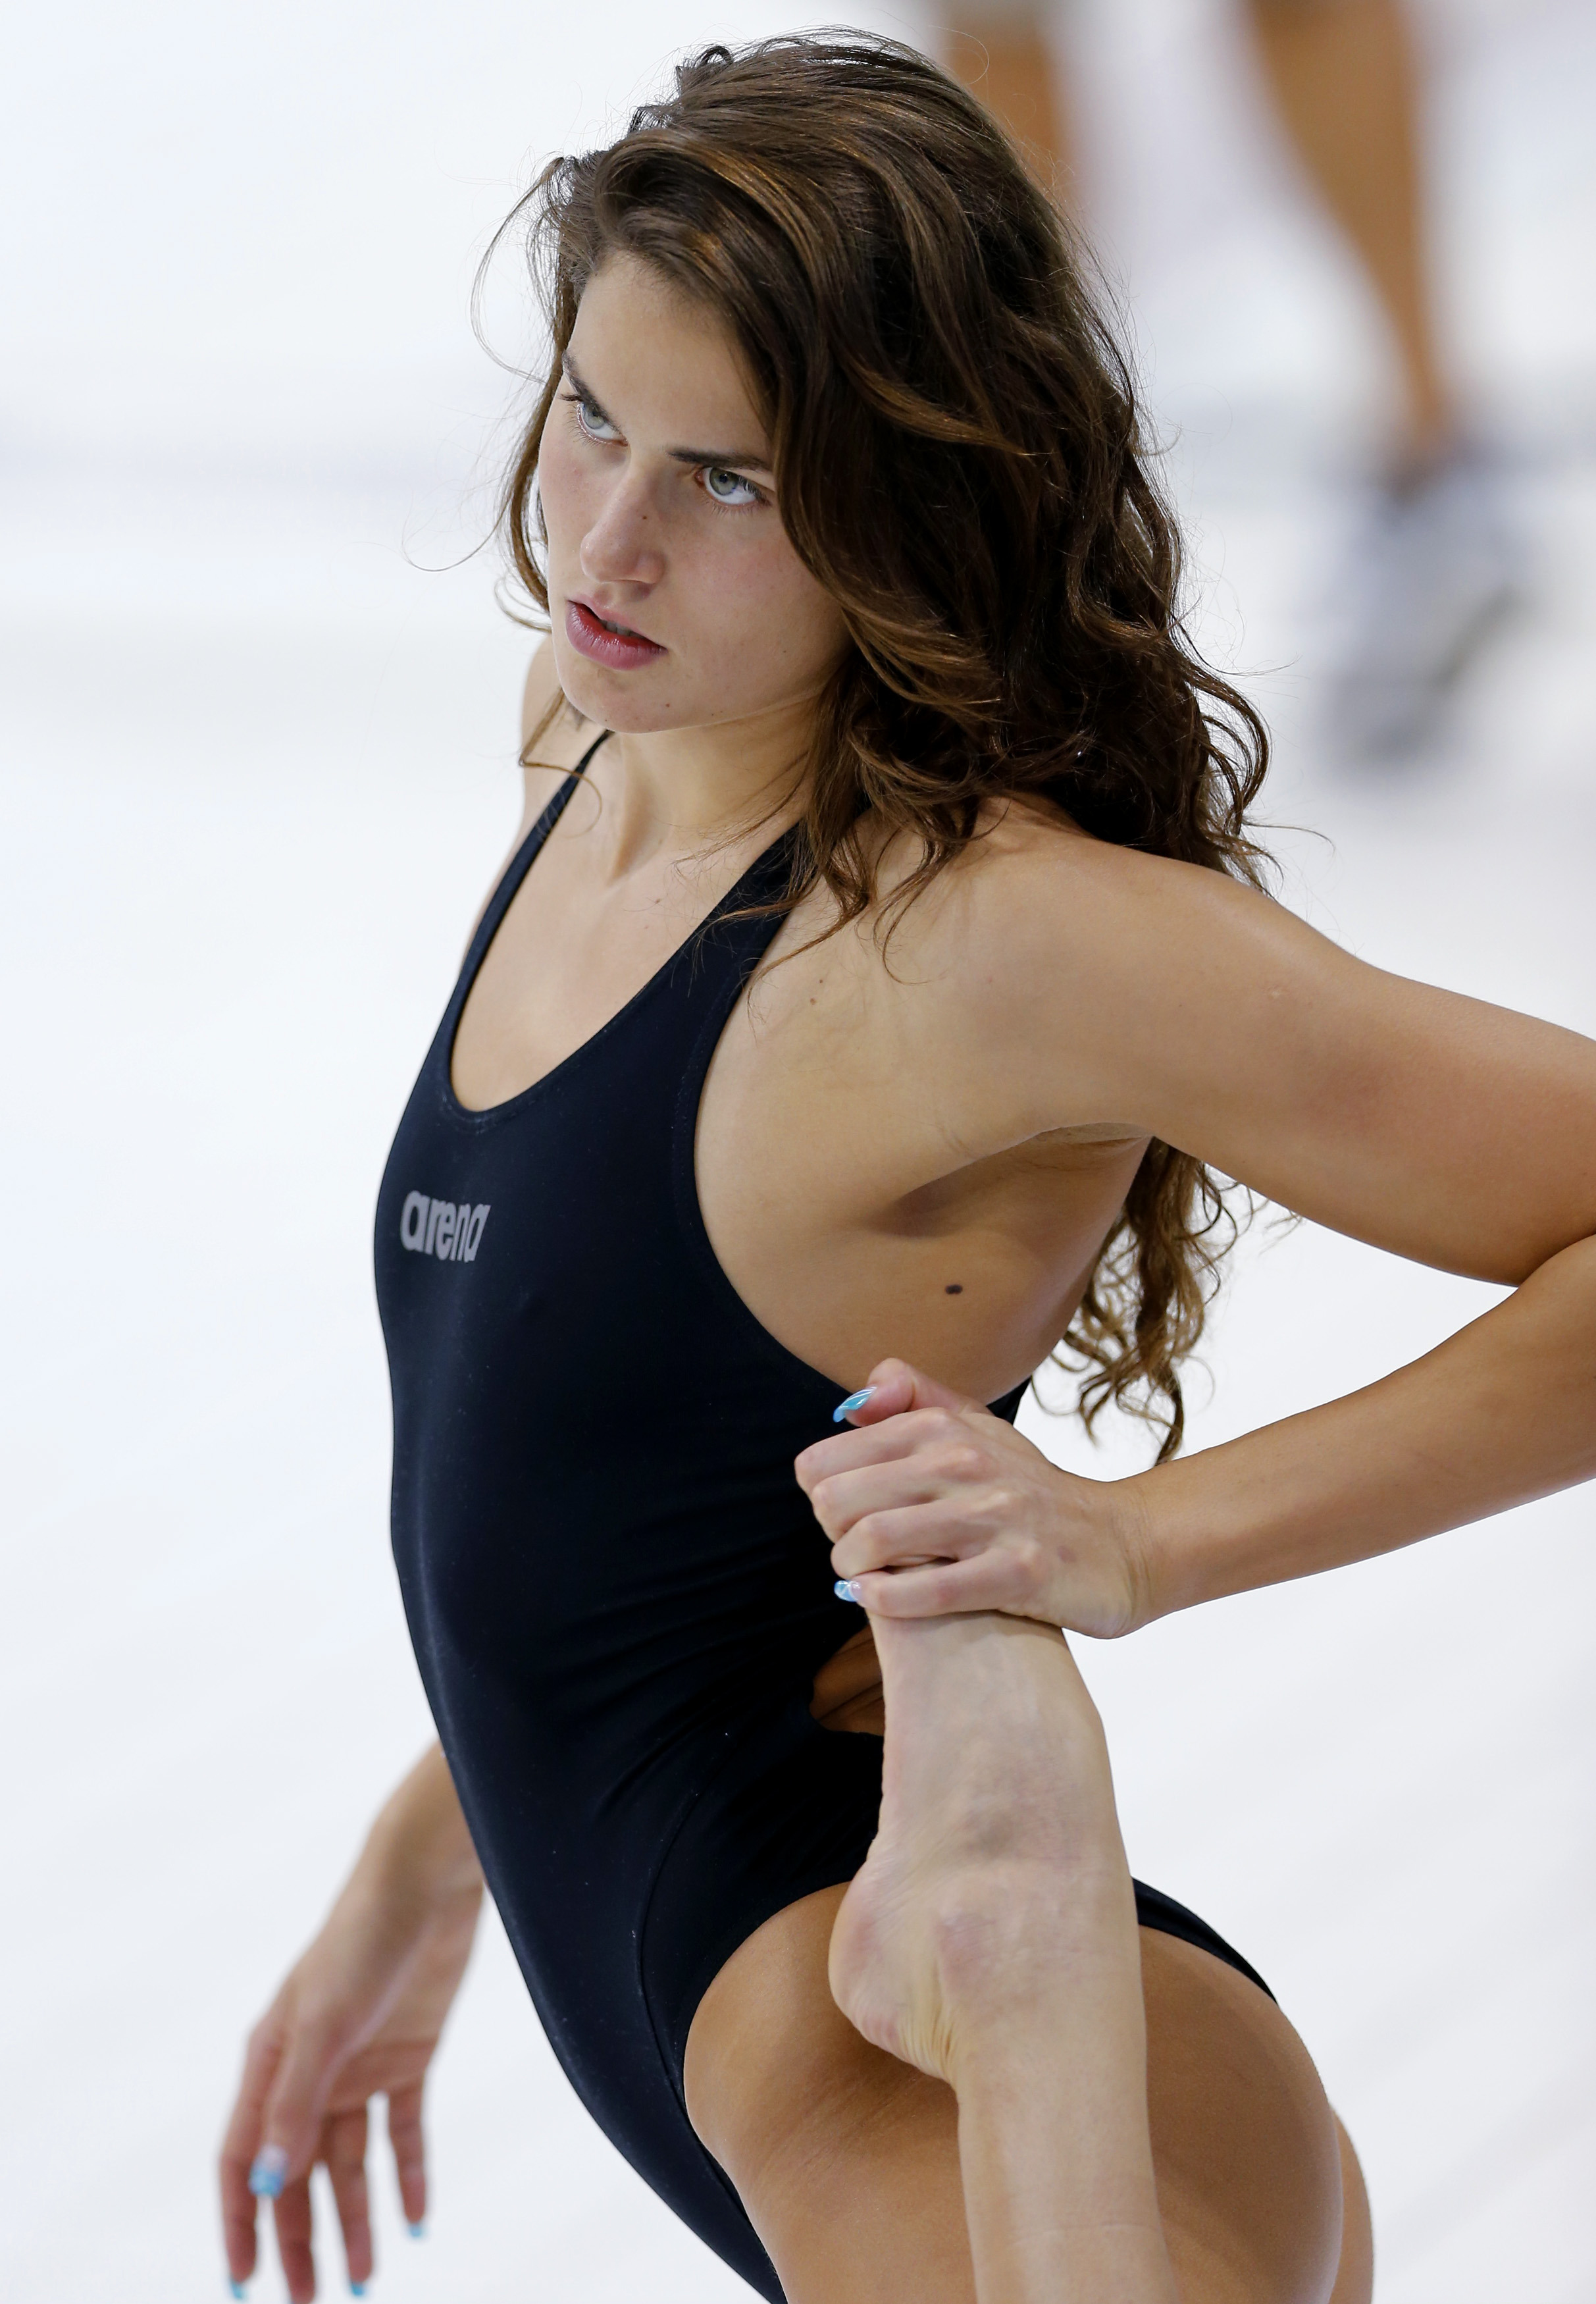 Hungary's Zsuzsanna Jakabos warms up before her women's 200m butterfly semi-final during the London 2012 Olympic Games